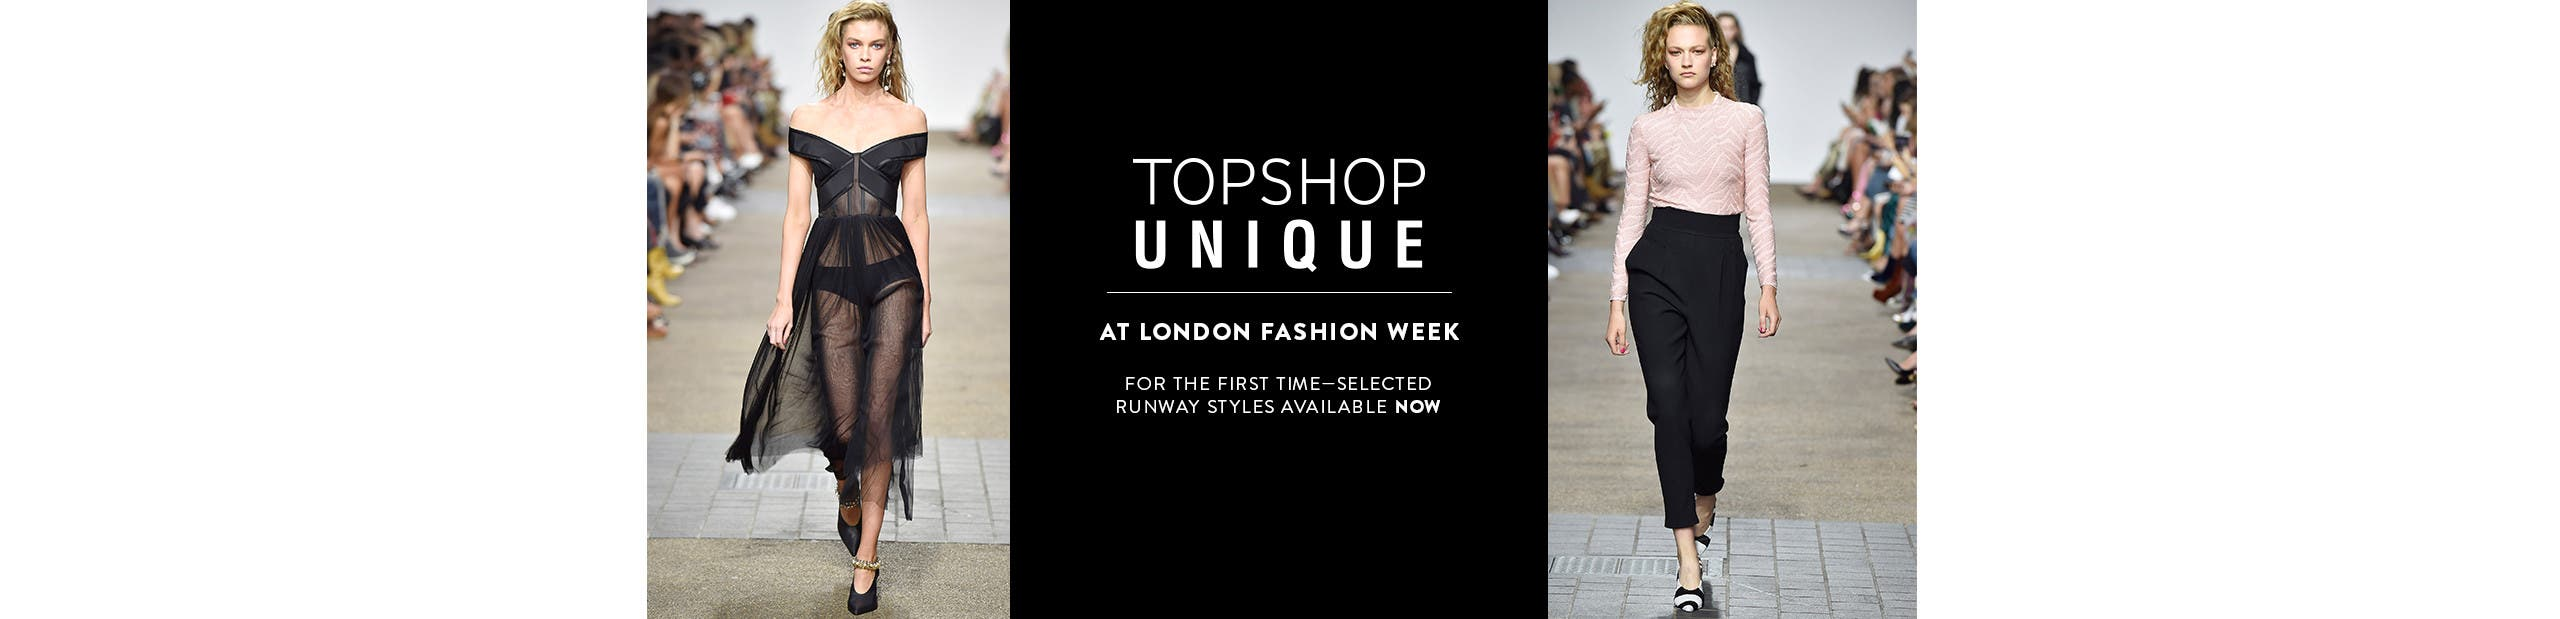 Topshop: Spring 2017 styles available NOW.